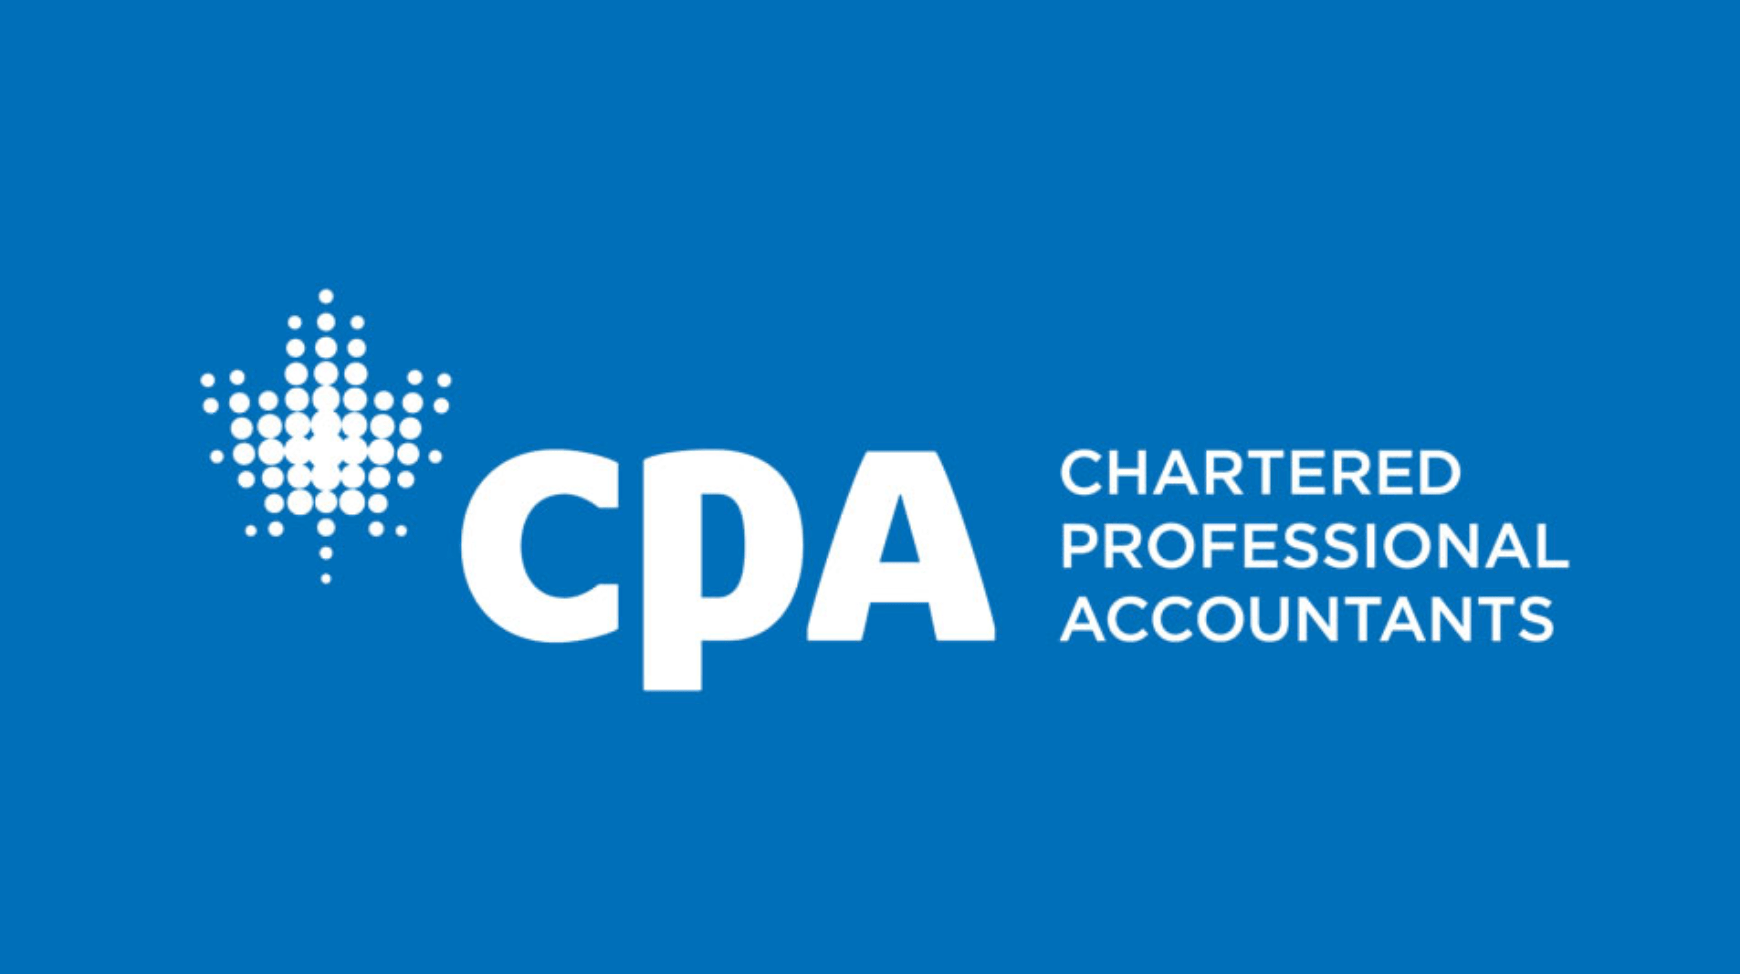 Chartered Accountant Cpa Cpa Ontario Tells Accountants To Steer Clear Of Unregulated Icos